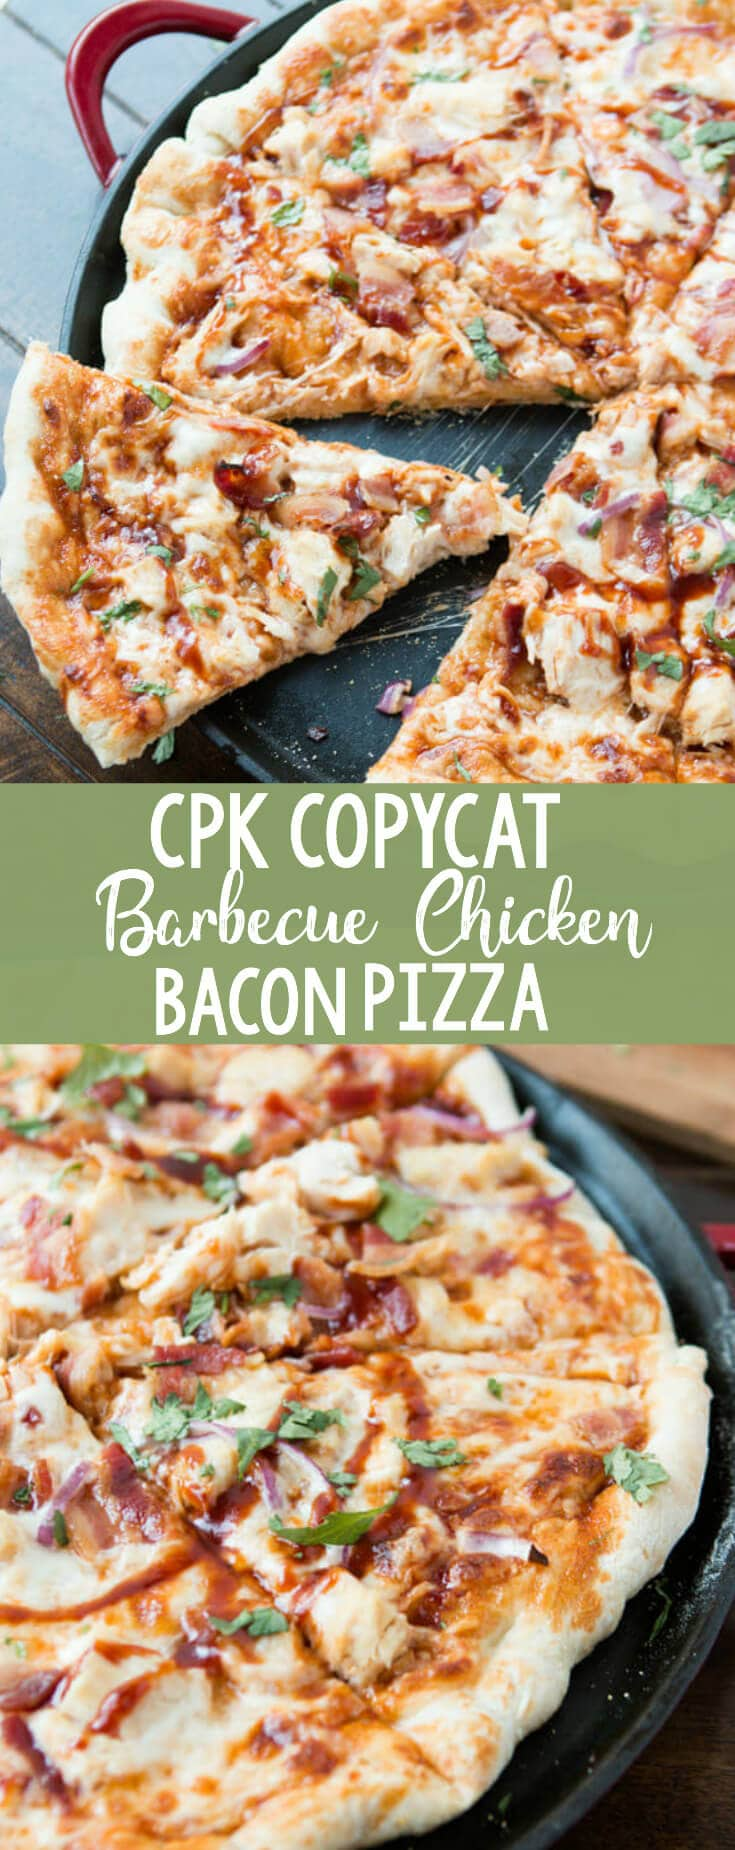 Delicious copycat California Pizza Kitchen BBQ Chicken Pizza. The cheese and the sauce melt into the pizza leaving the chicken and bacon warm and toasted. This is definitely a family fave.